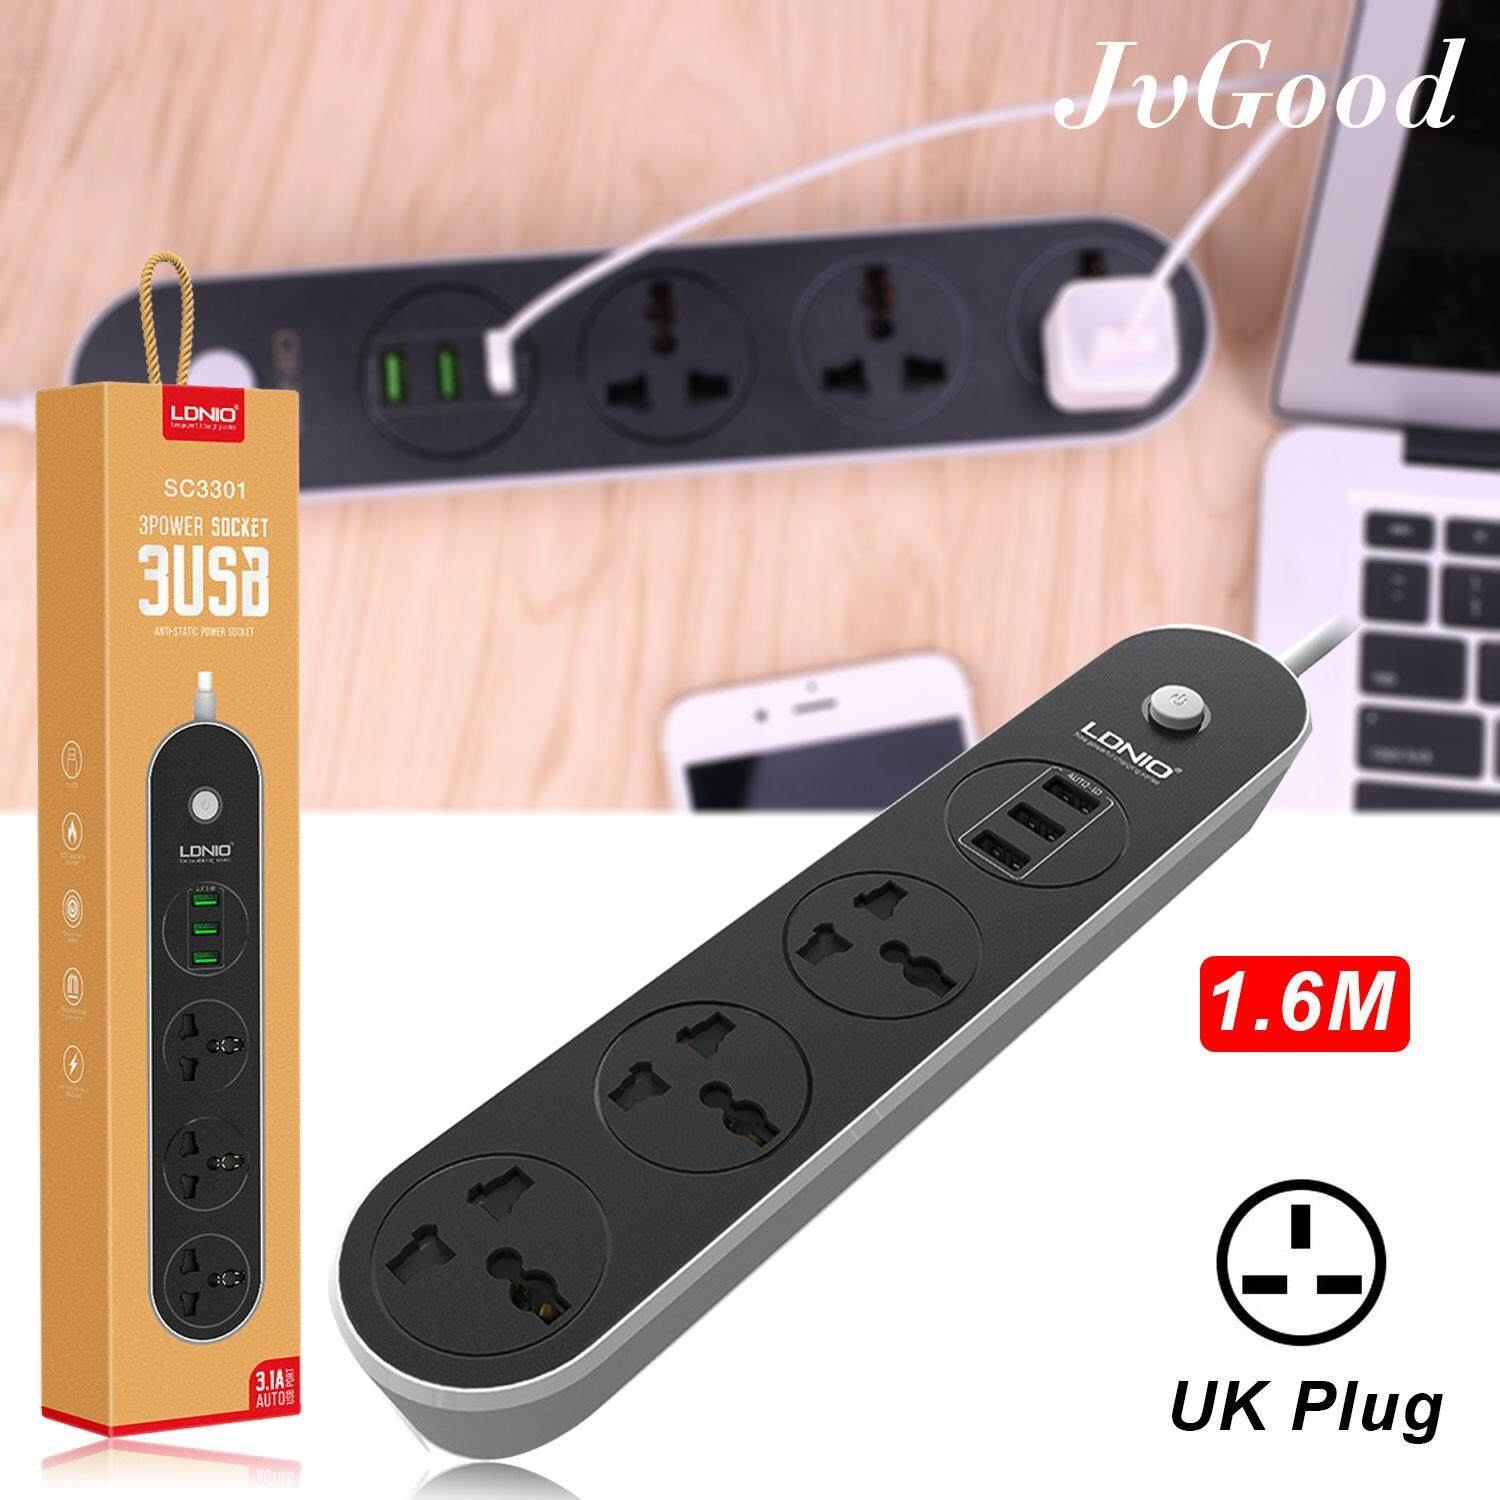 Jvgood Universal Power Strip Adapter Power Extension Surge Protector With 3 Sockets Outlets 3 Usb Extension Port 1.6m Cable For Multiple Devices Smart Phone Tablet Laptop Computer Uk Plug By Jvgood.